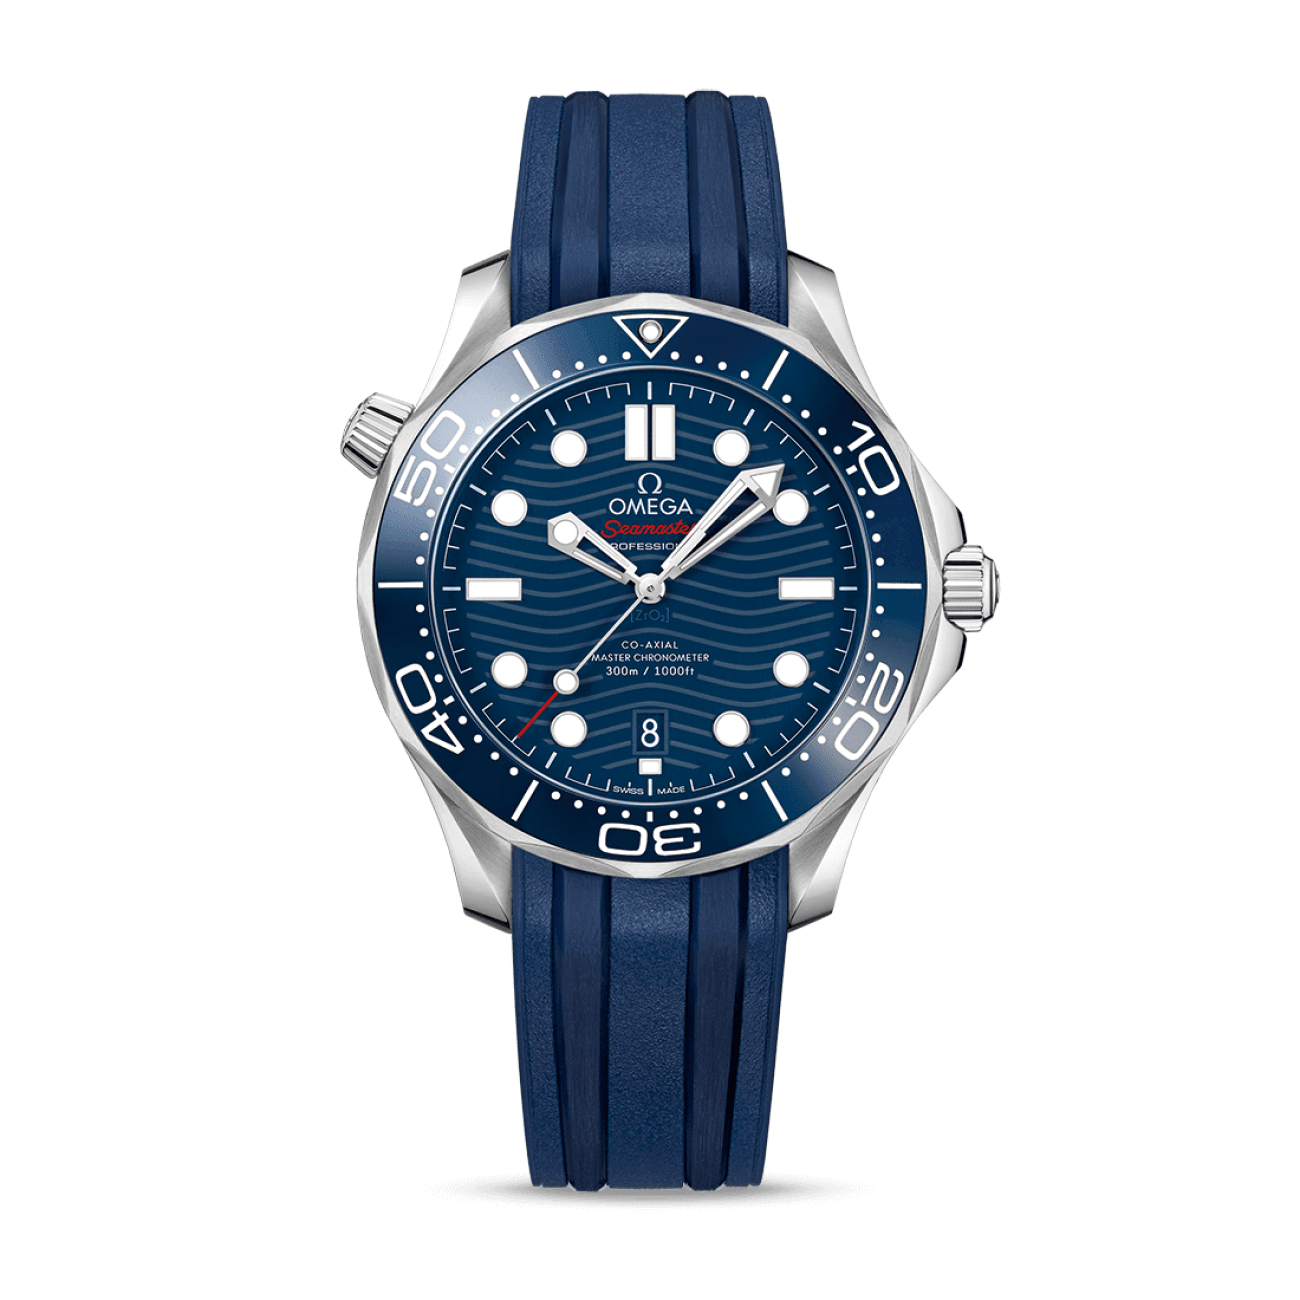 Omega Watches - DIVER 300M OMEGA COAXIAL MASTER CHRONOMETER 42 MM | Manfredi Jewels